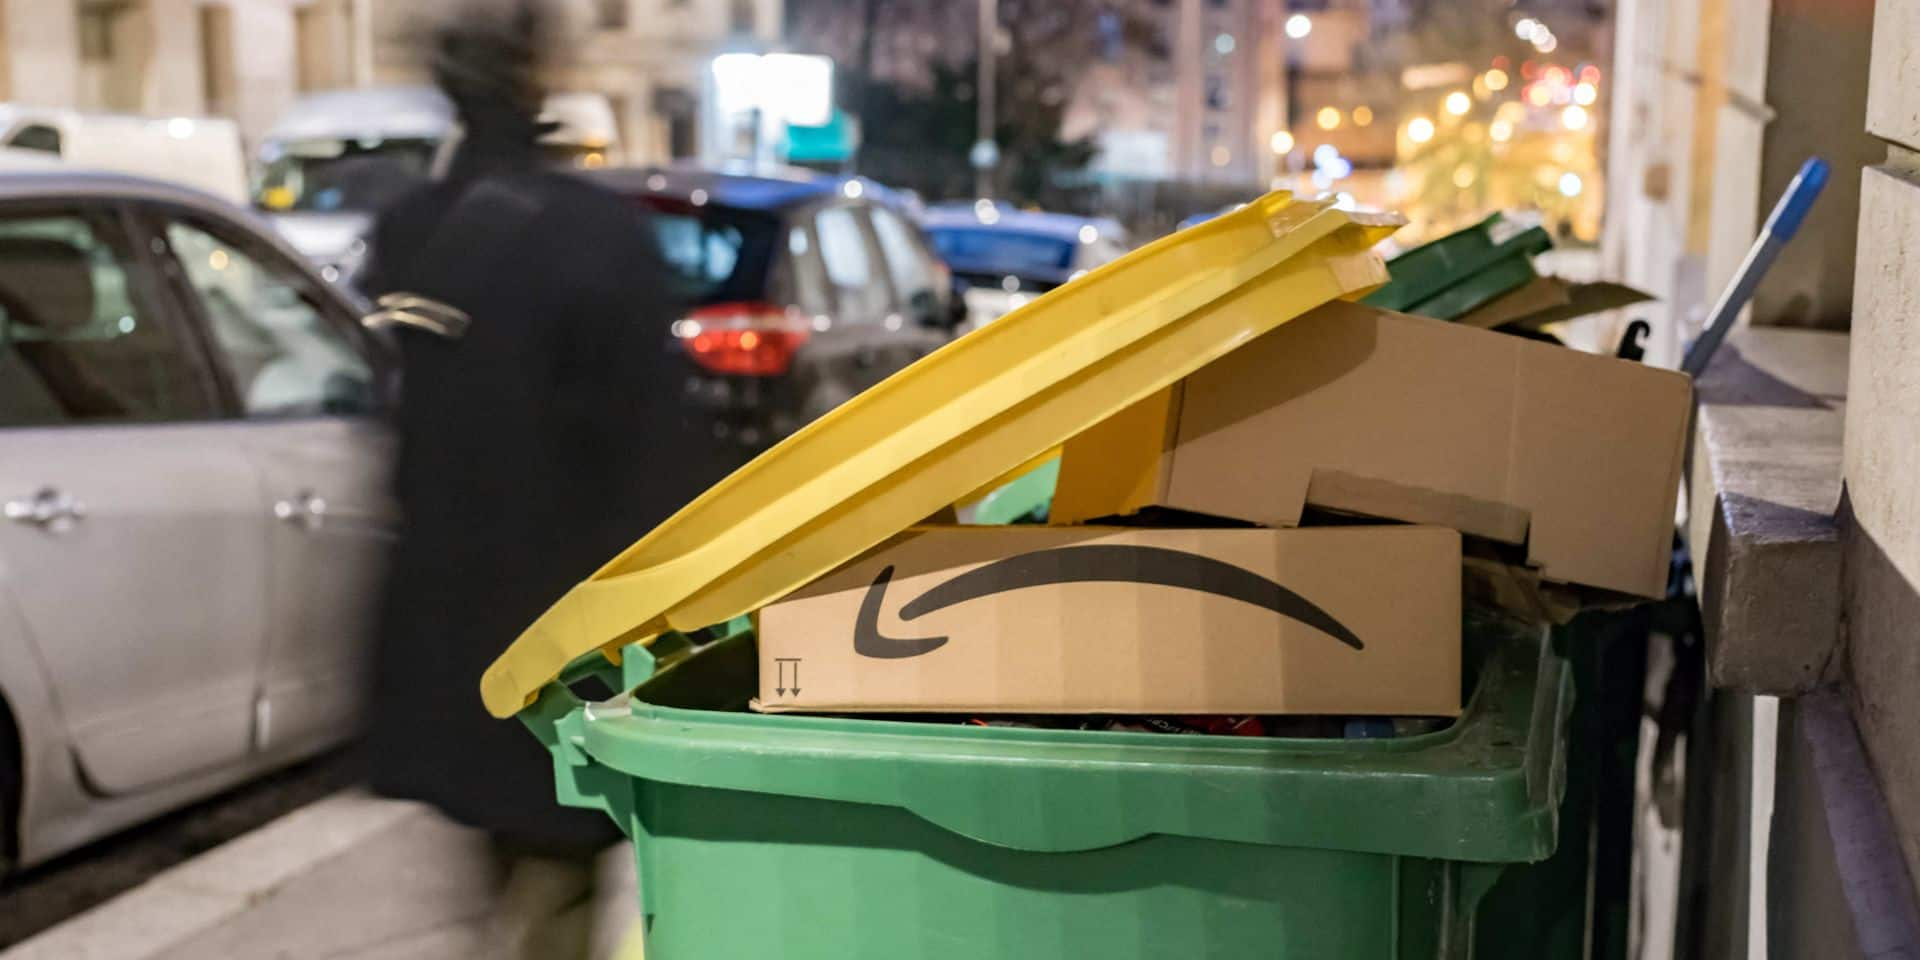 Trash Can Contains Packaging From Amazon - Paris